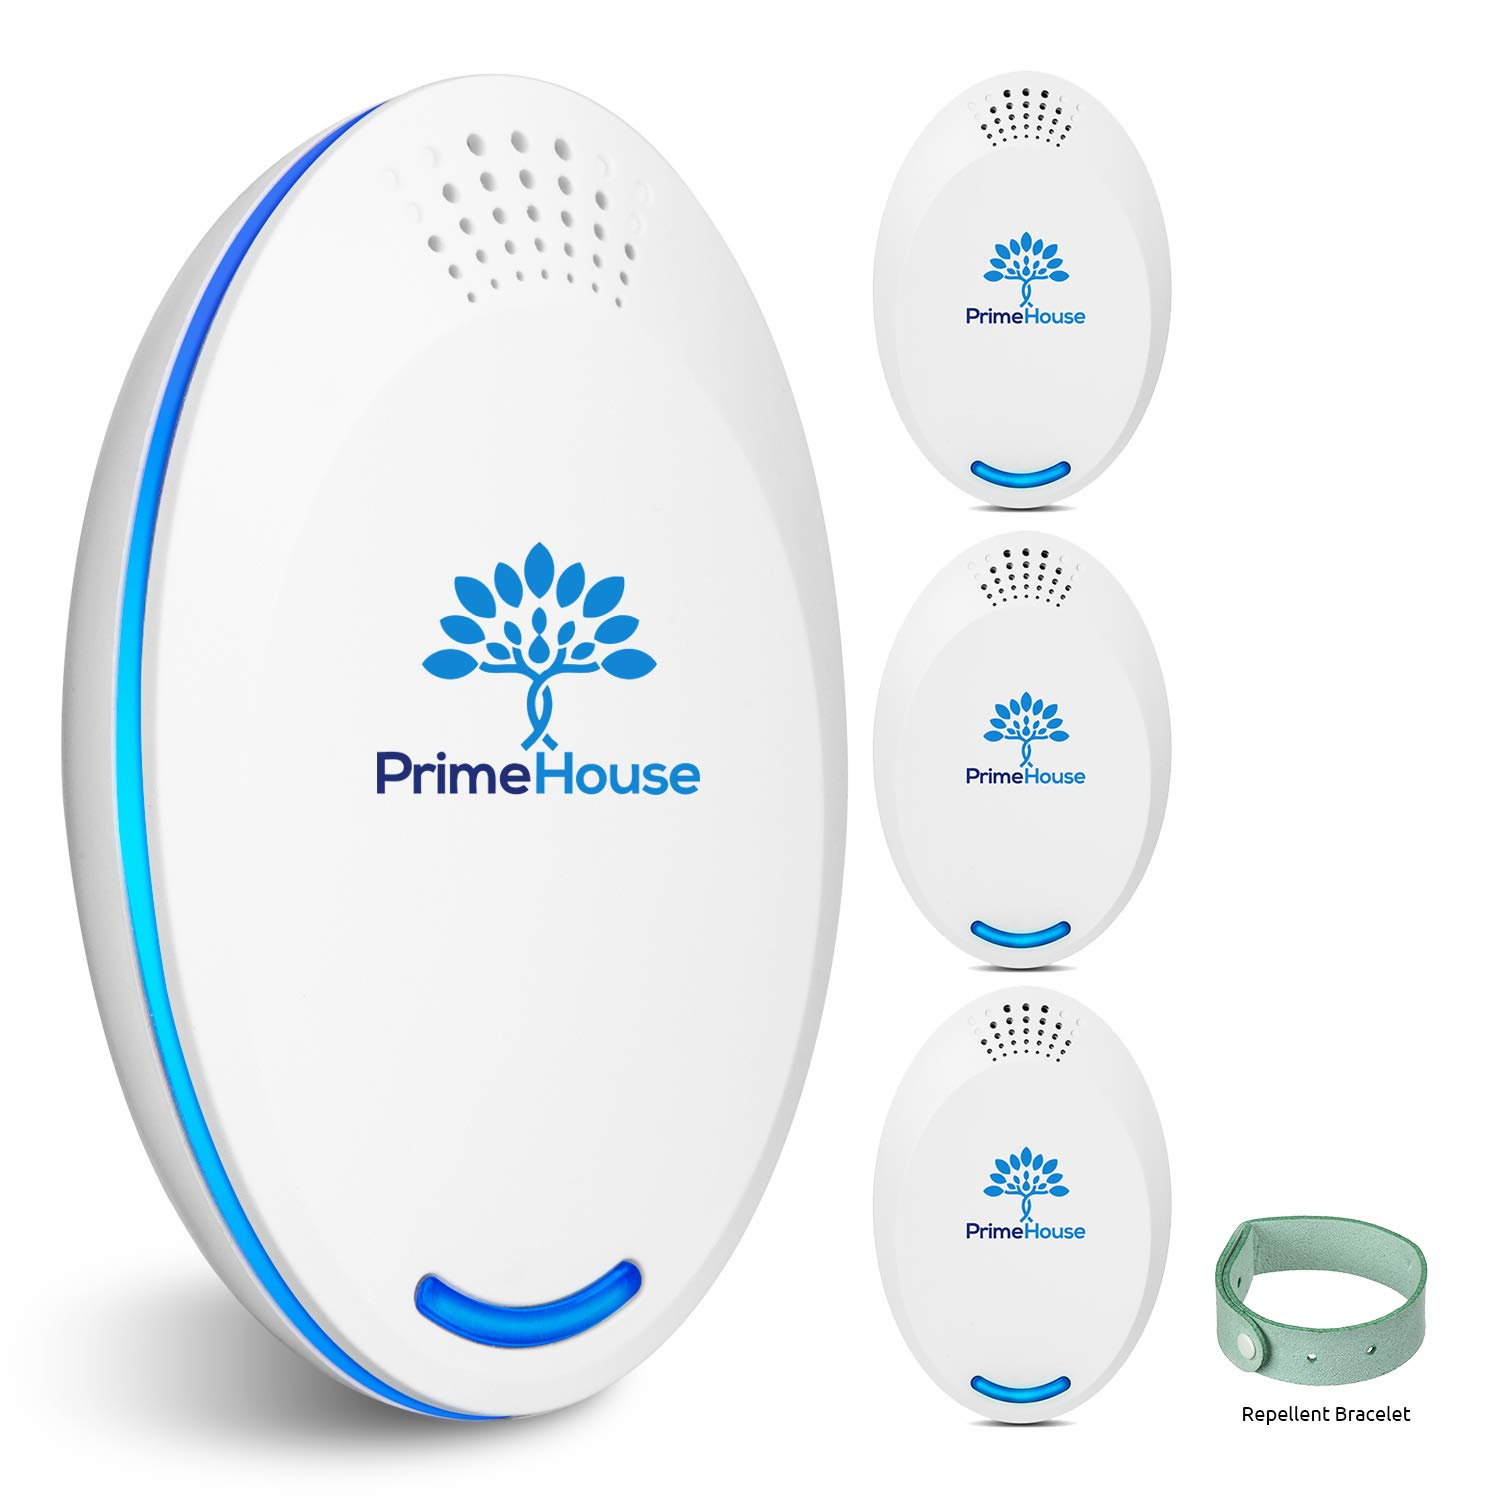 Ultrasonic Pest Repeller Plug in | Spider Repellent | Pest Reject | Pest Control | Indoor Electronic Repellers for Mice, Mouse, Rodent, Squirrel, Roach, Insect, Rat, Bug | Pack of 4 by Prime House